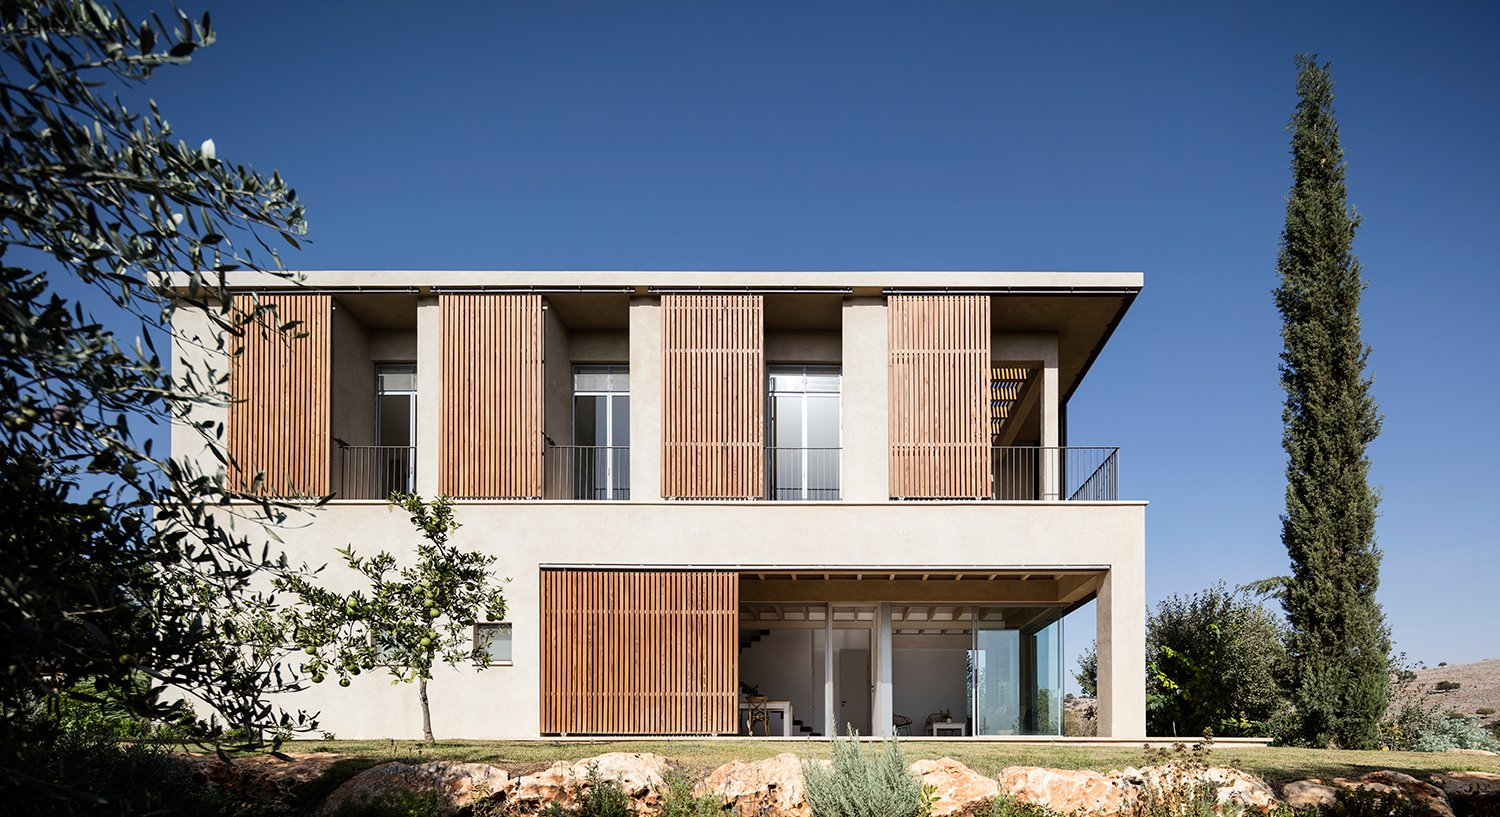 Moveable Wooden Screens Add a Playful Touch to This Airy Home in Israel